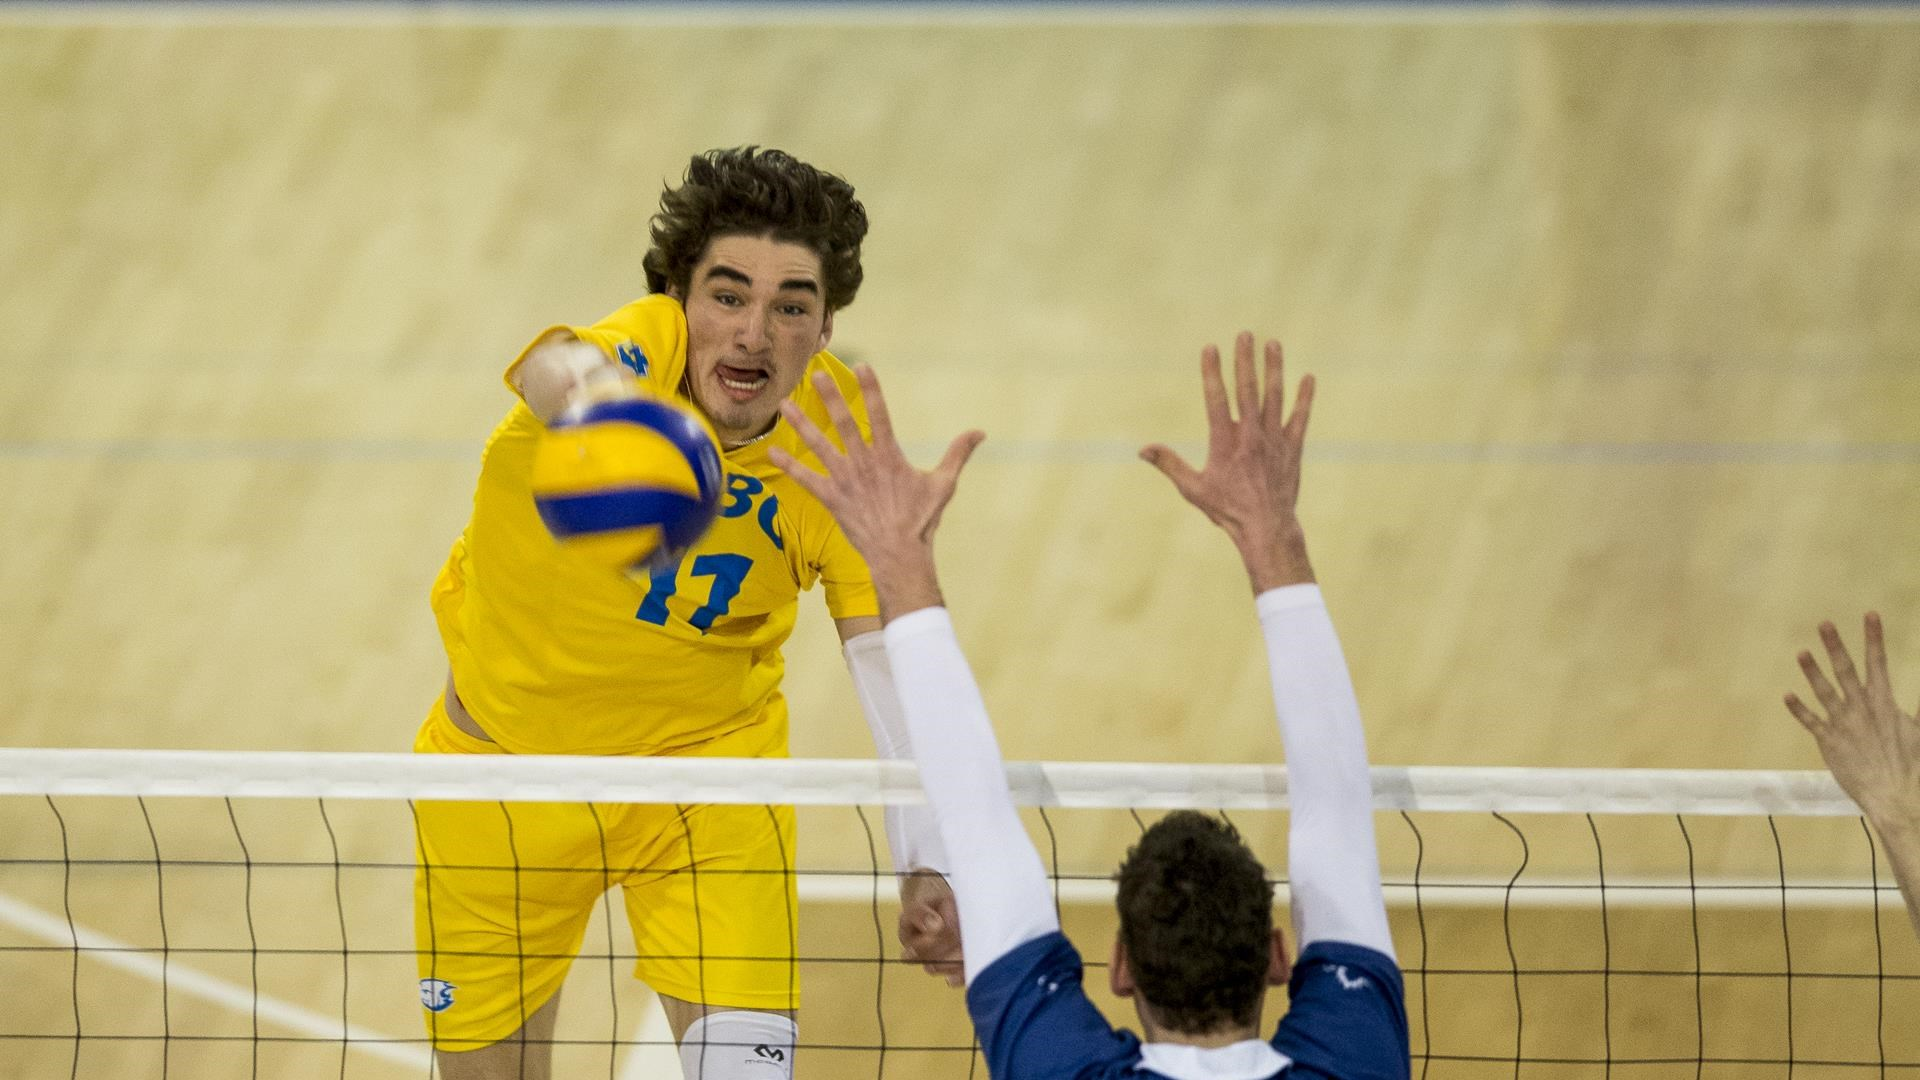 The former middle blocker McCarthy also chose the professional path after winning the championship in his first year.